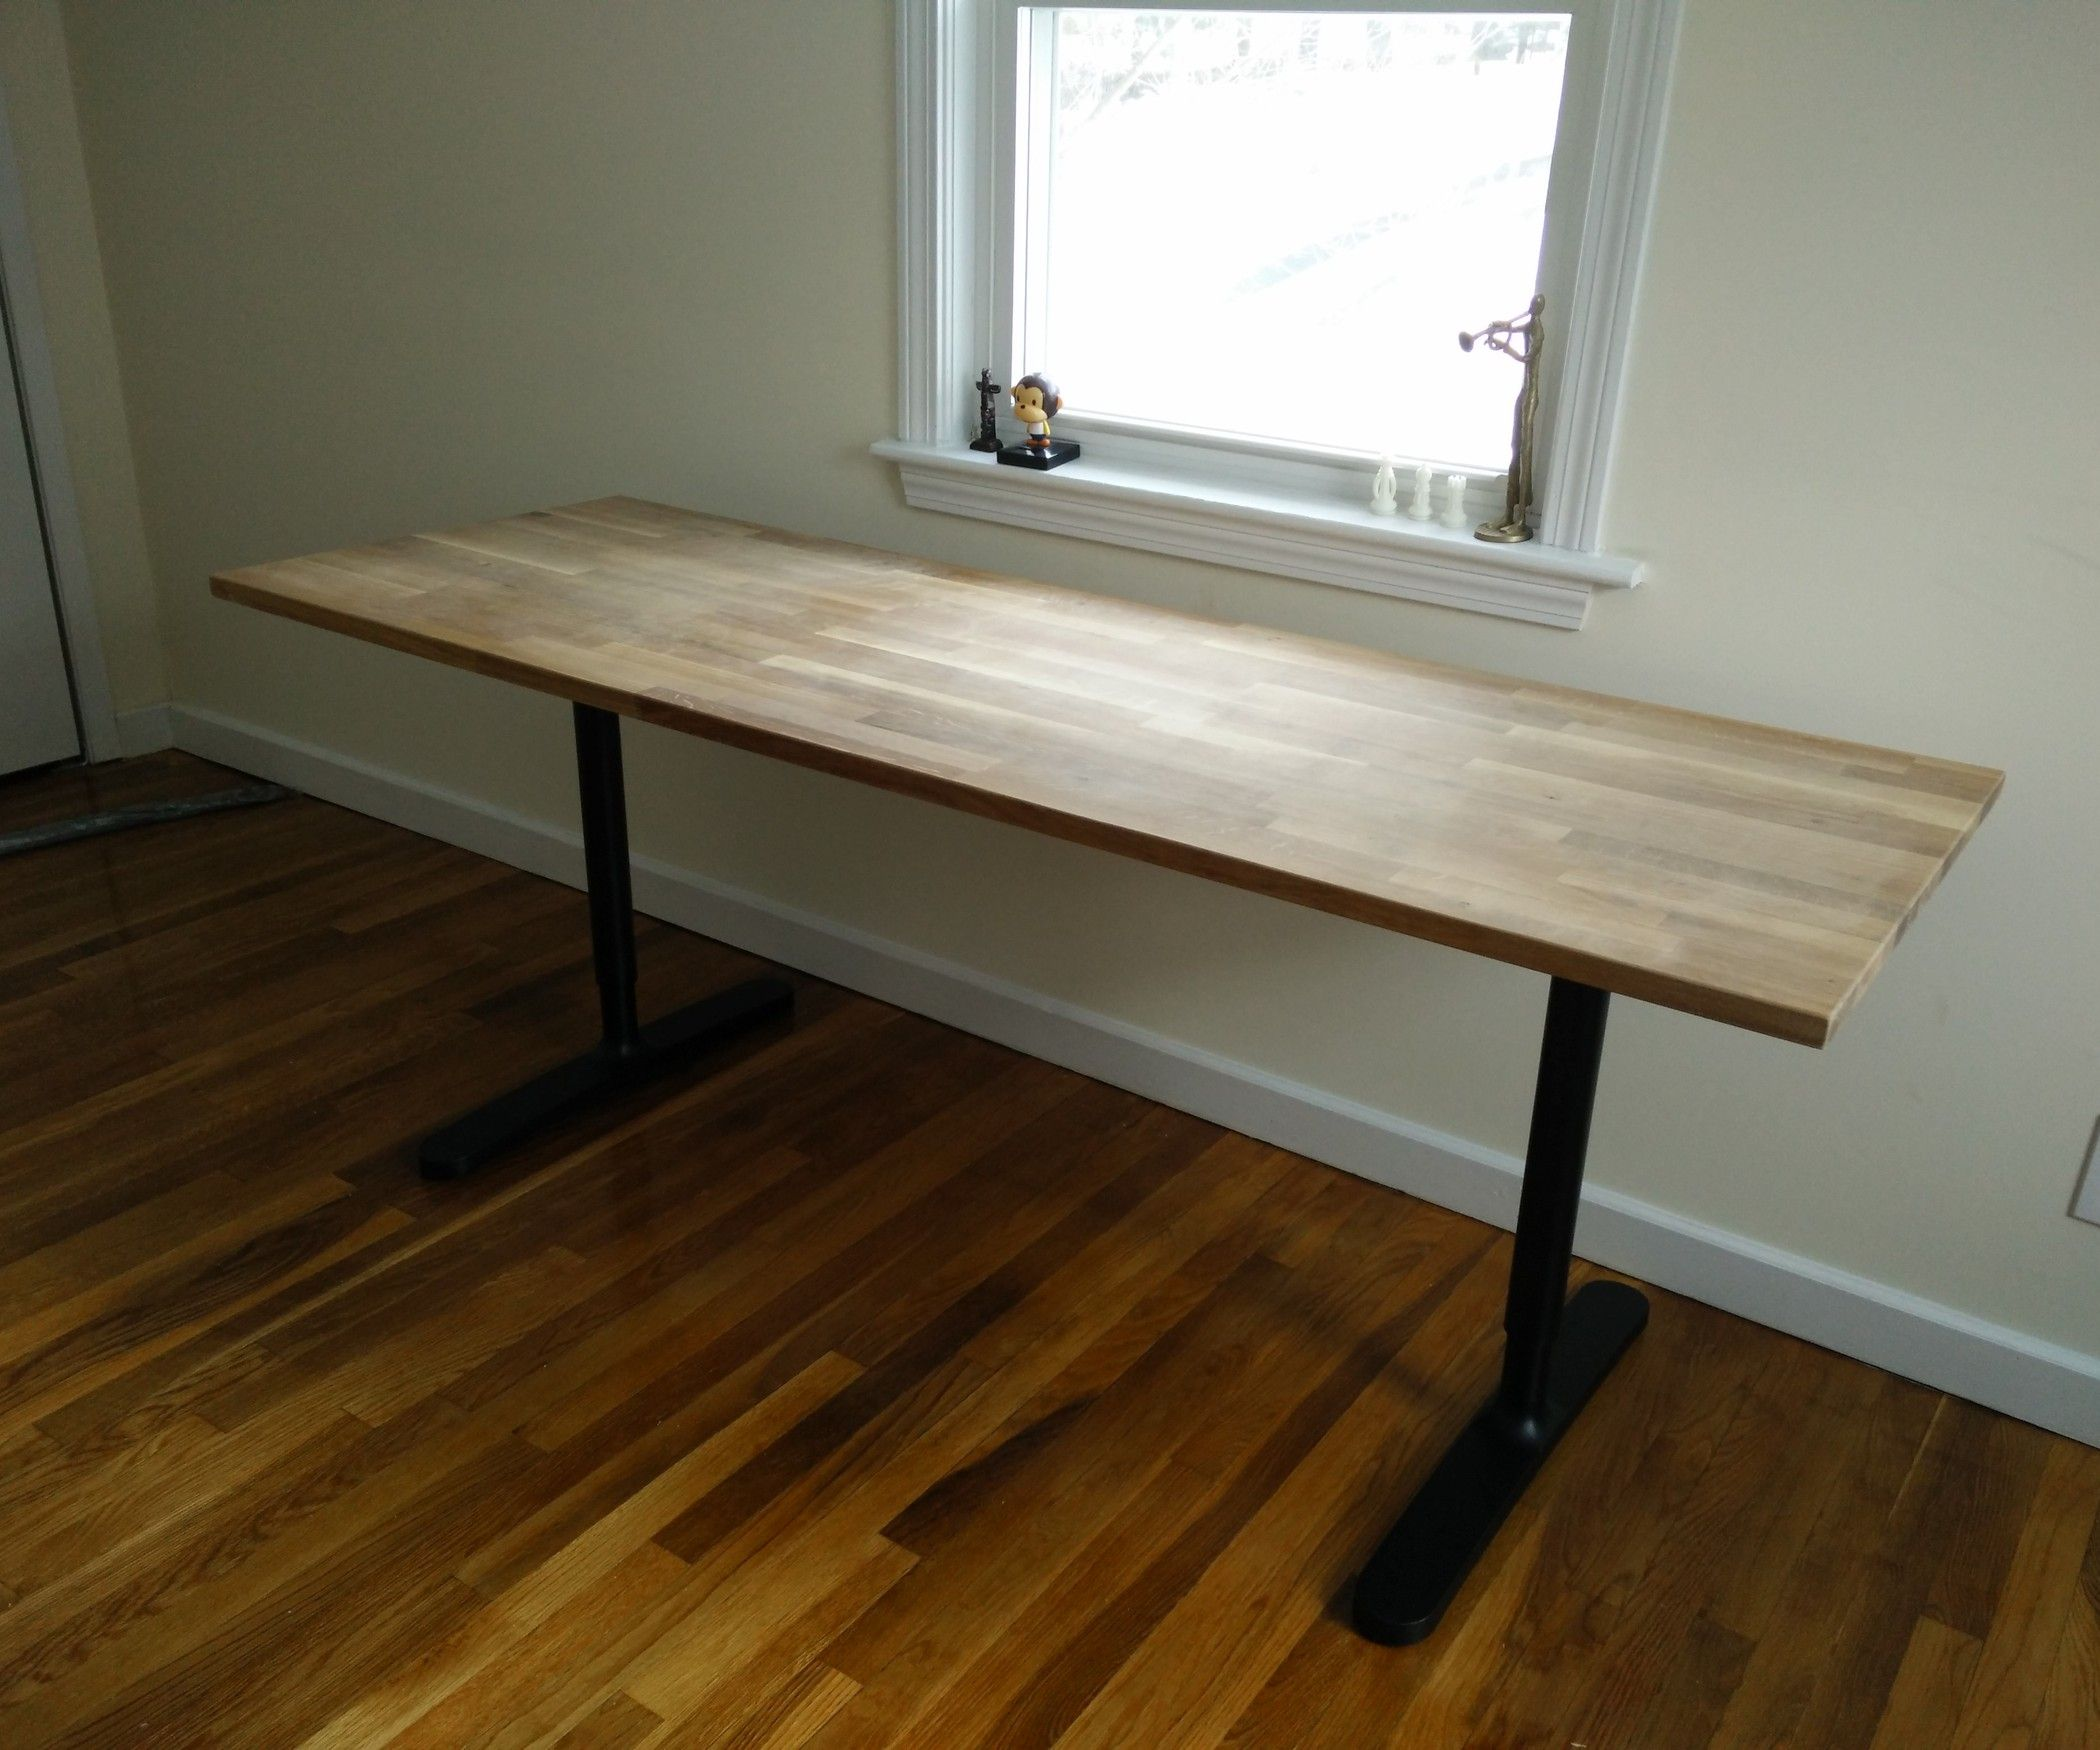 Ikea Kitchen Desk: Butcher Block Countertop Table (IKEA Hack)